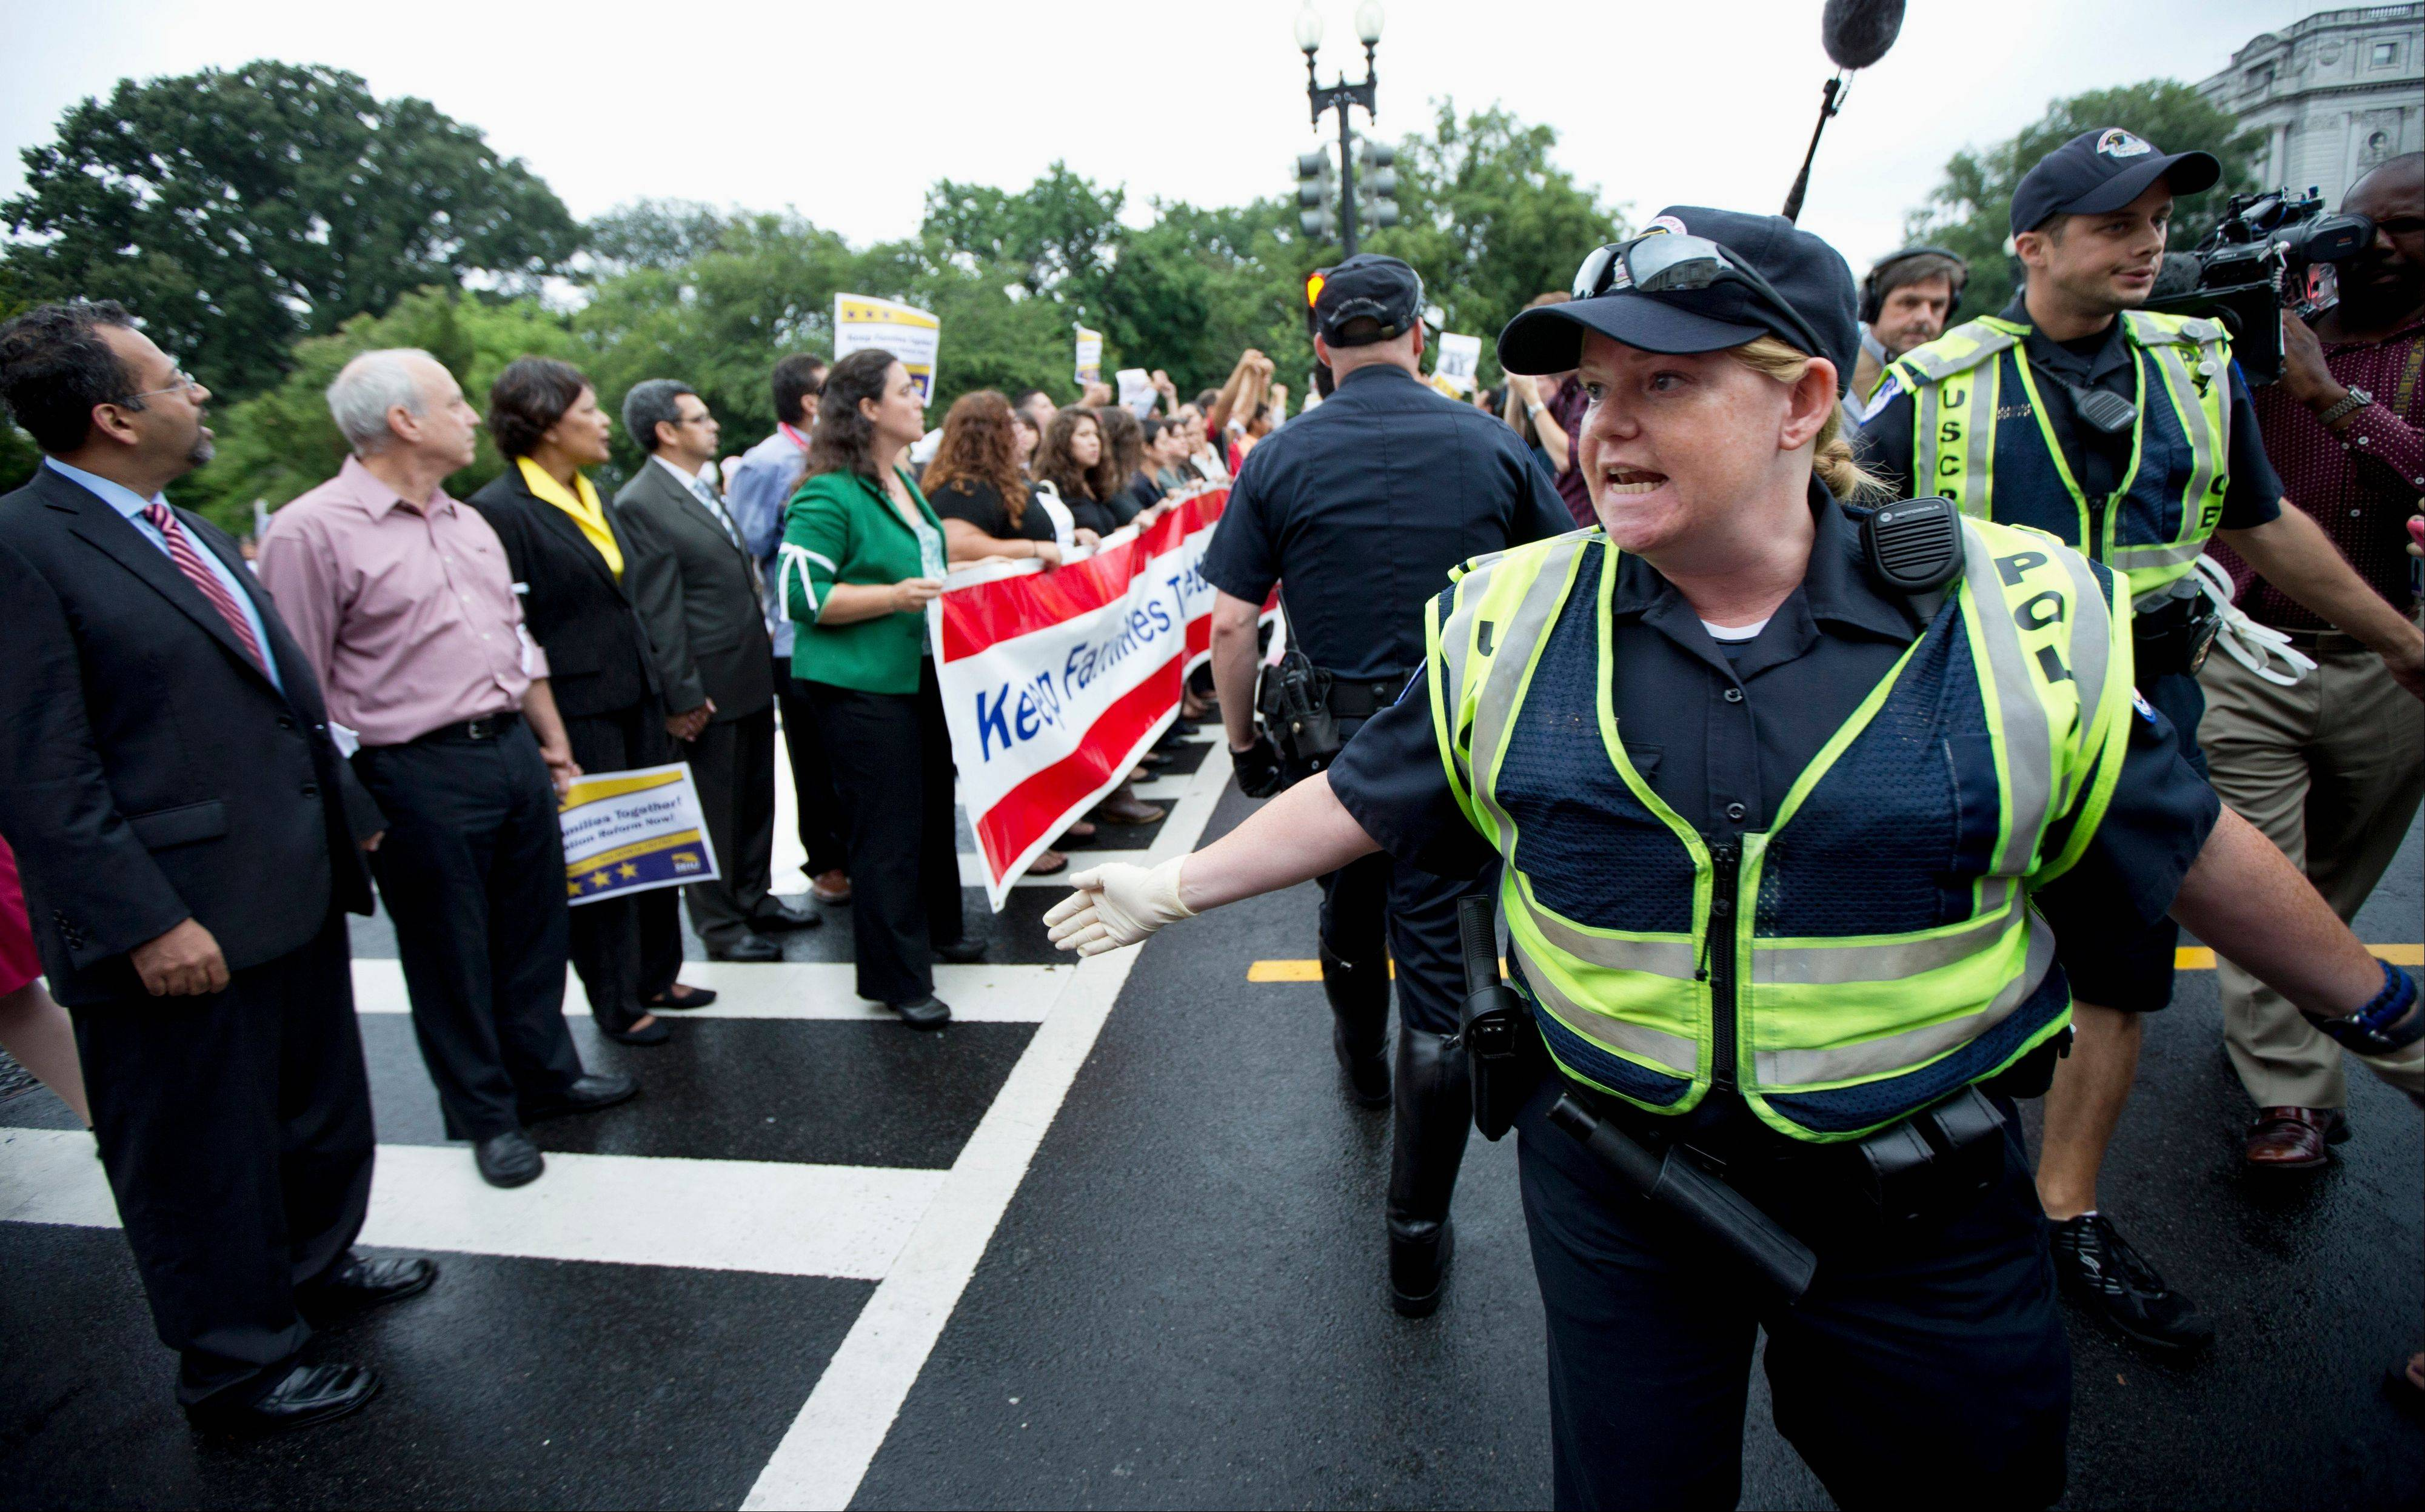 Capitol Hill Police officers try to clear a street that was blocked by immigration reform supporters during a rally protesting immigration policies and the House GOP's inability to pass a bill that contains a pathway to citizenship.